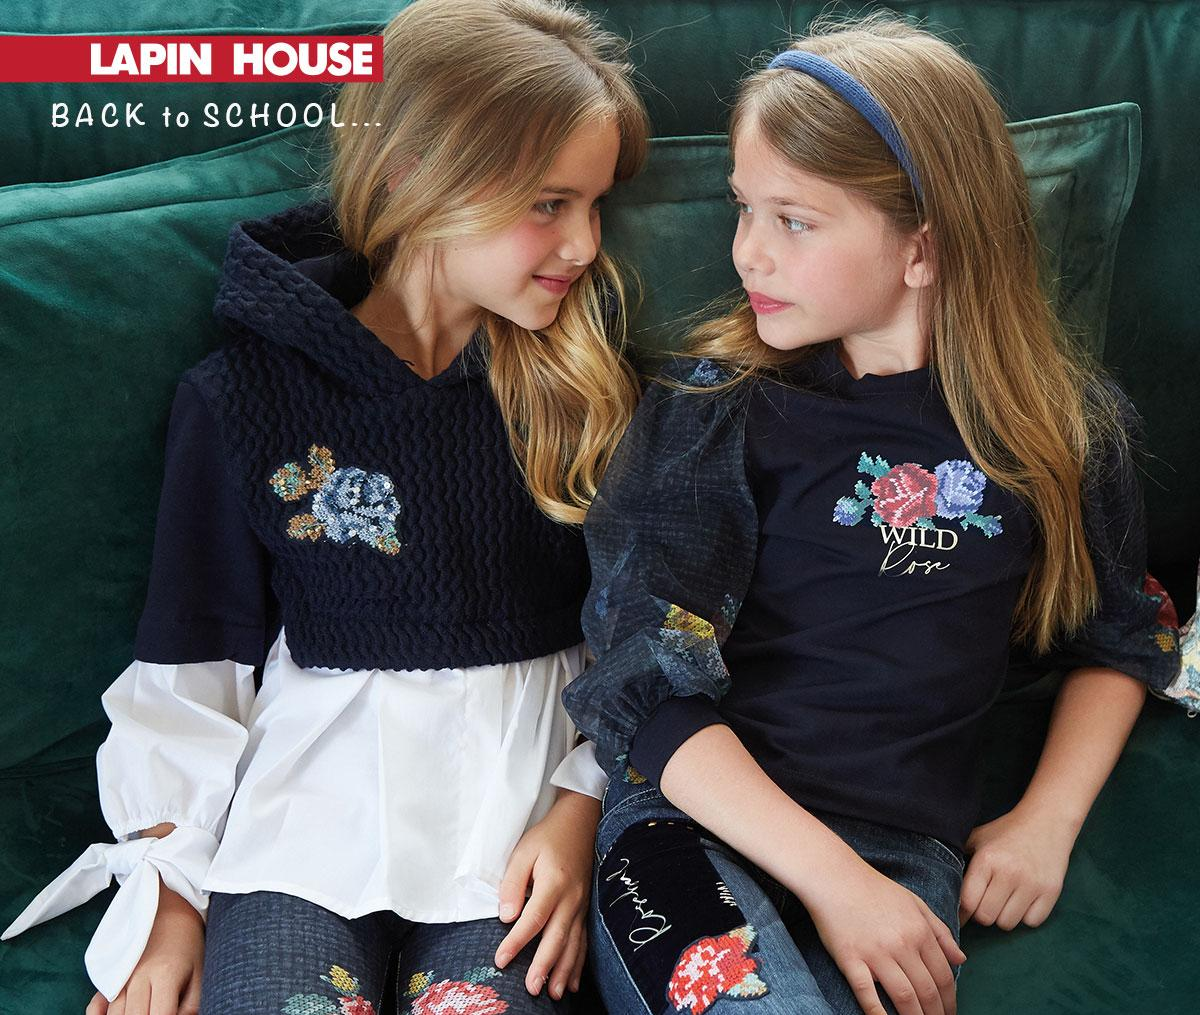 boom back to school lapin house